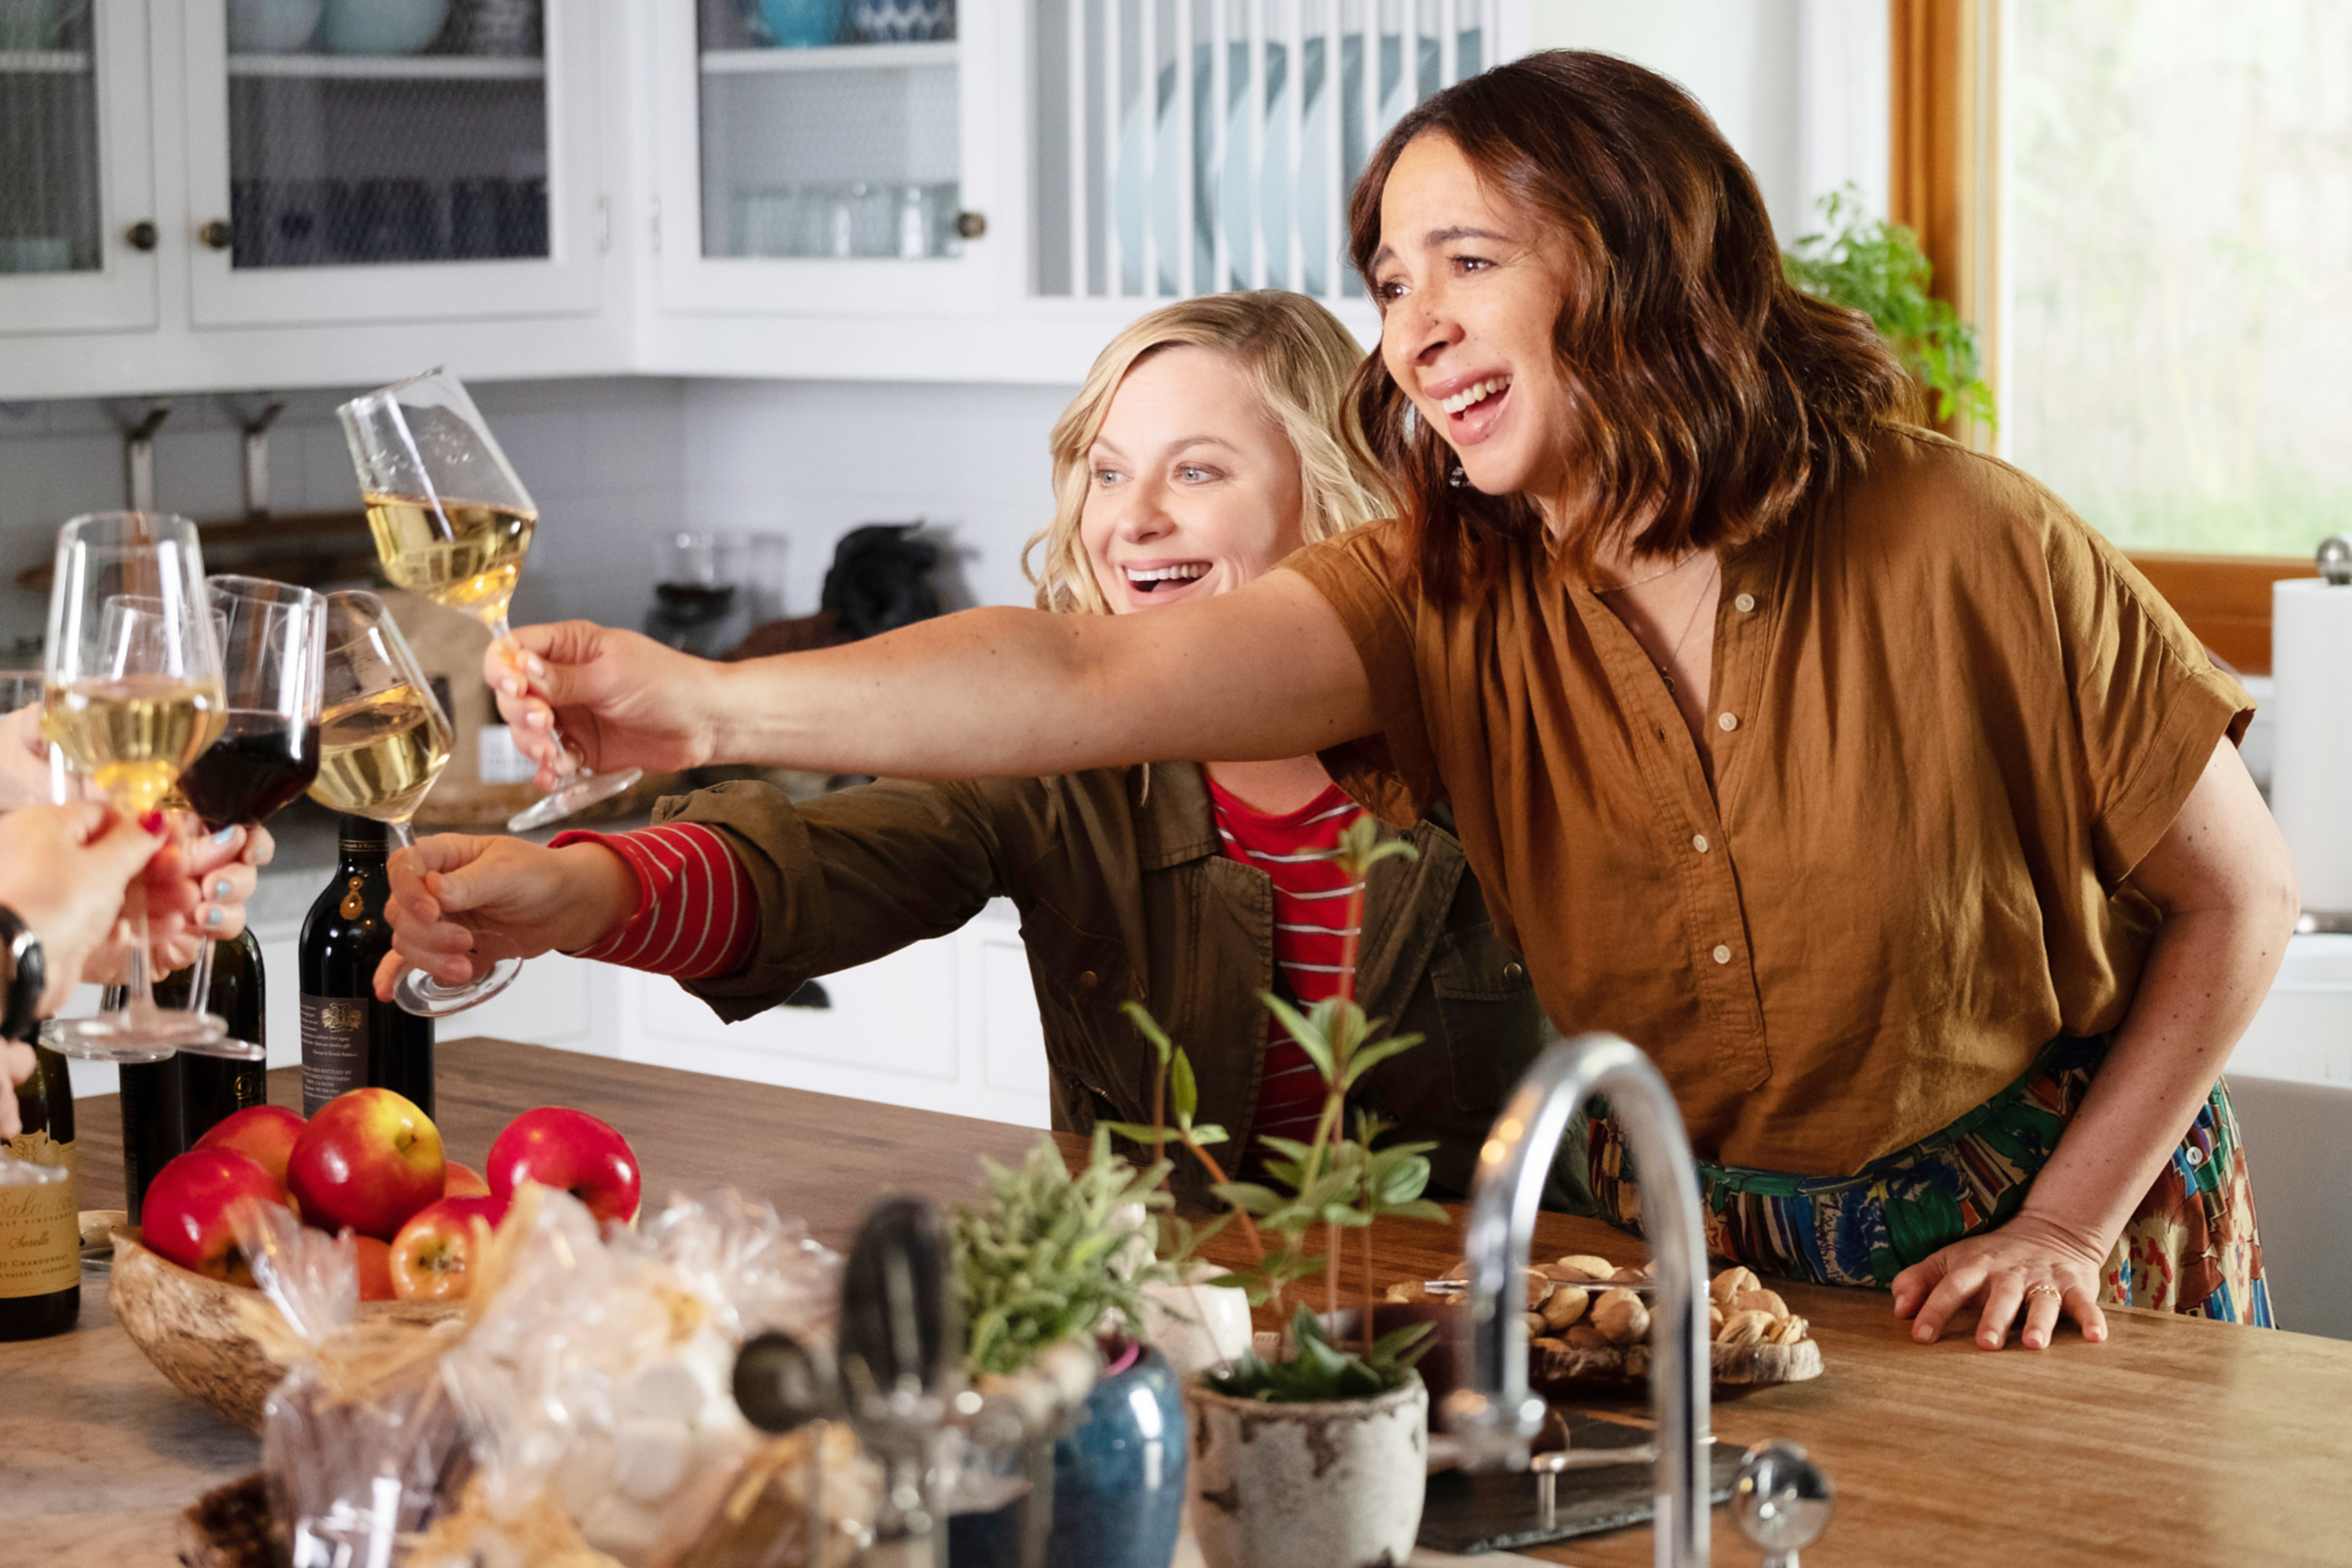 amy poehler and maya rudolph making a toast in the kitchen